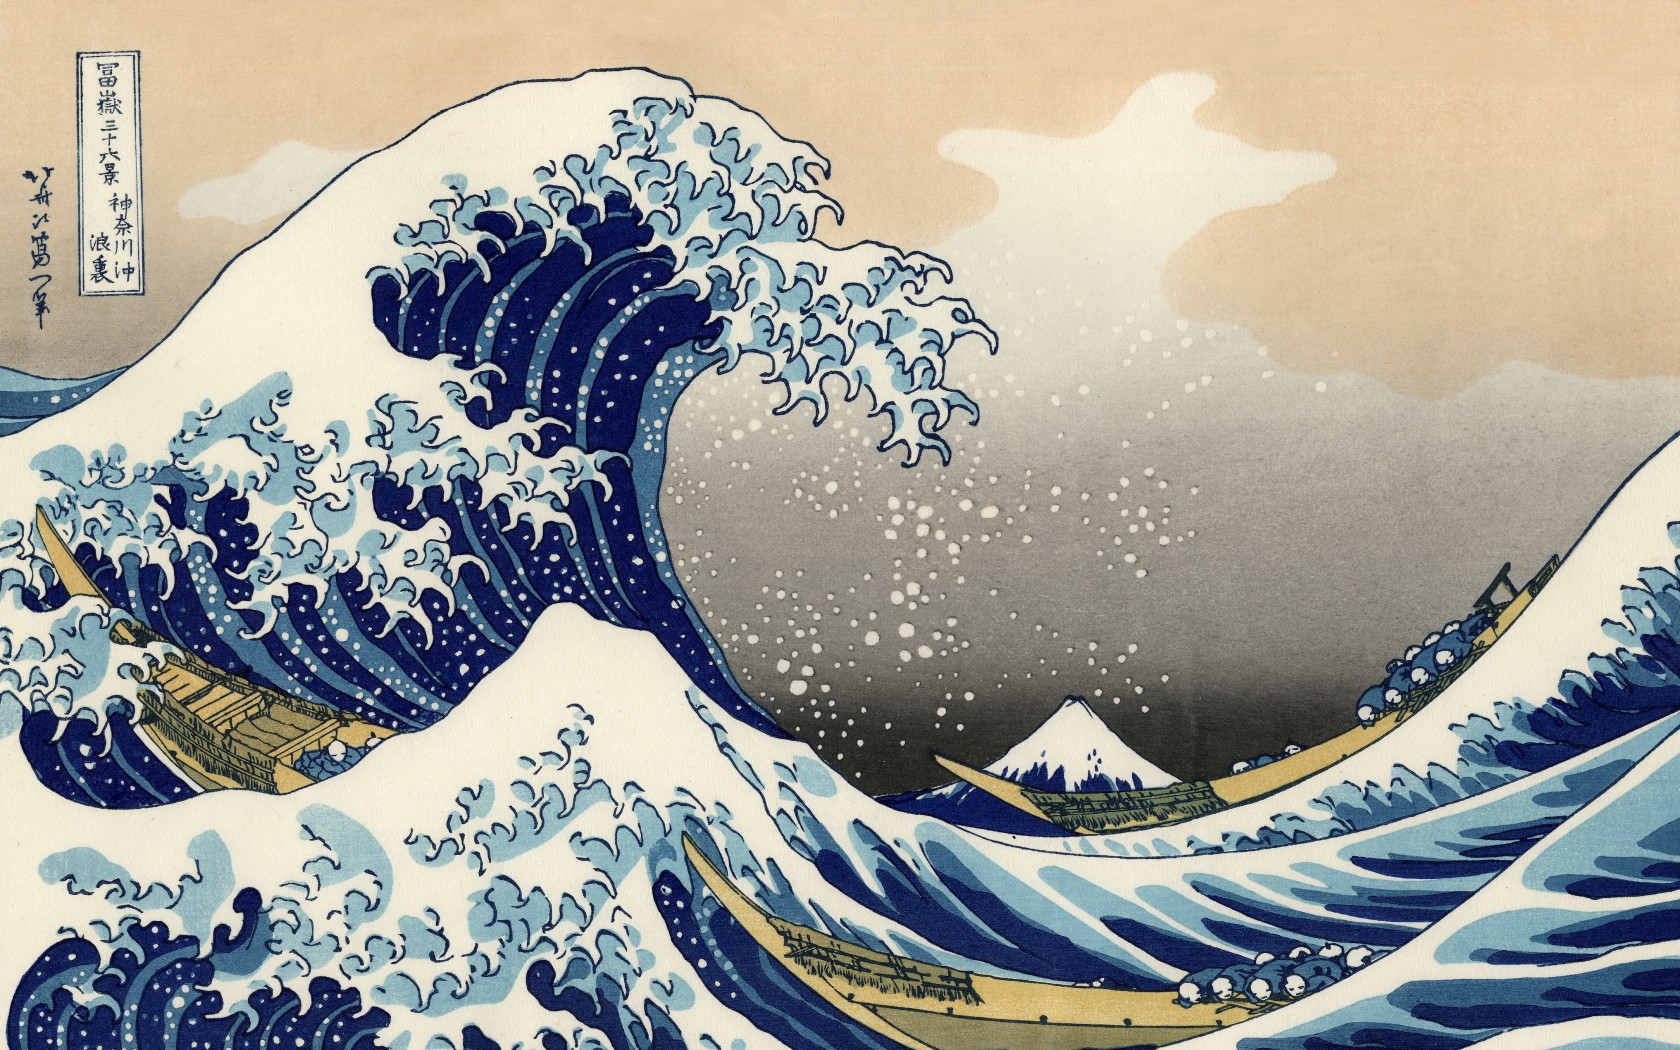 The-Great-Wave-off-Kanagawa-the-great-wave-off-kanagawa-1680x1050.jpg